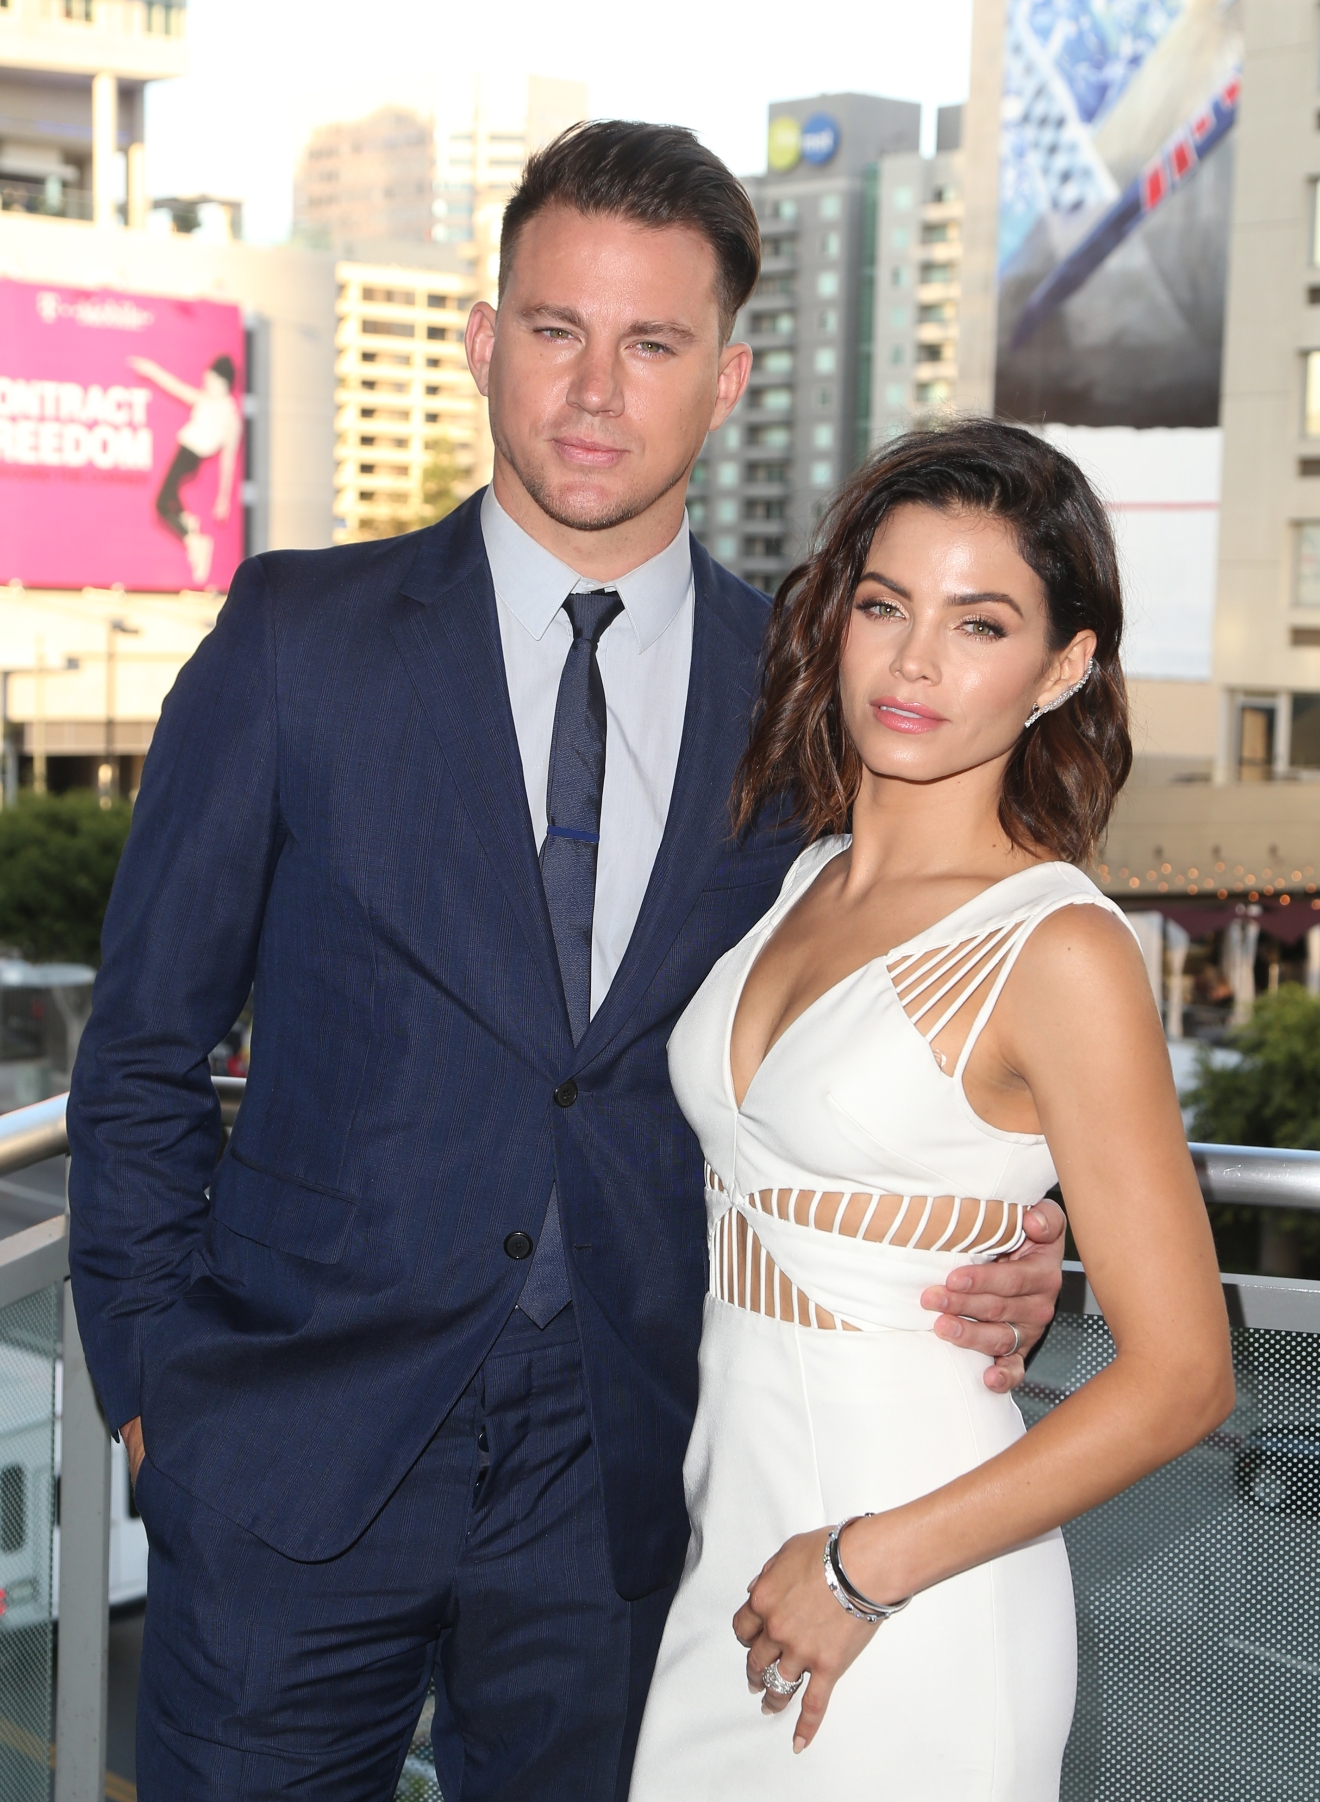 The Dizzy Feet Foundation 5th Annual �Celebration of Dance Gala�  Featuring: Channing Tatum, Jenna Dewan-Tatum Where: Los Angeles, California, United States When: 01 Aug 2015 Credit: FayesVision/WENN.com